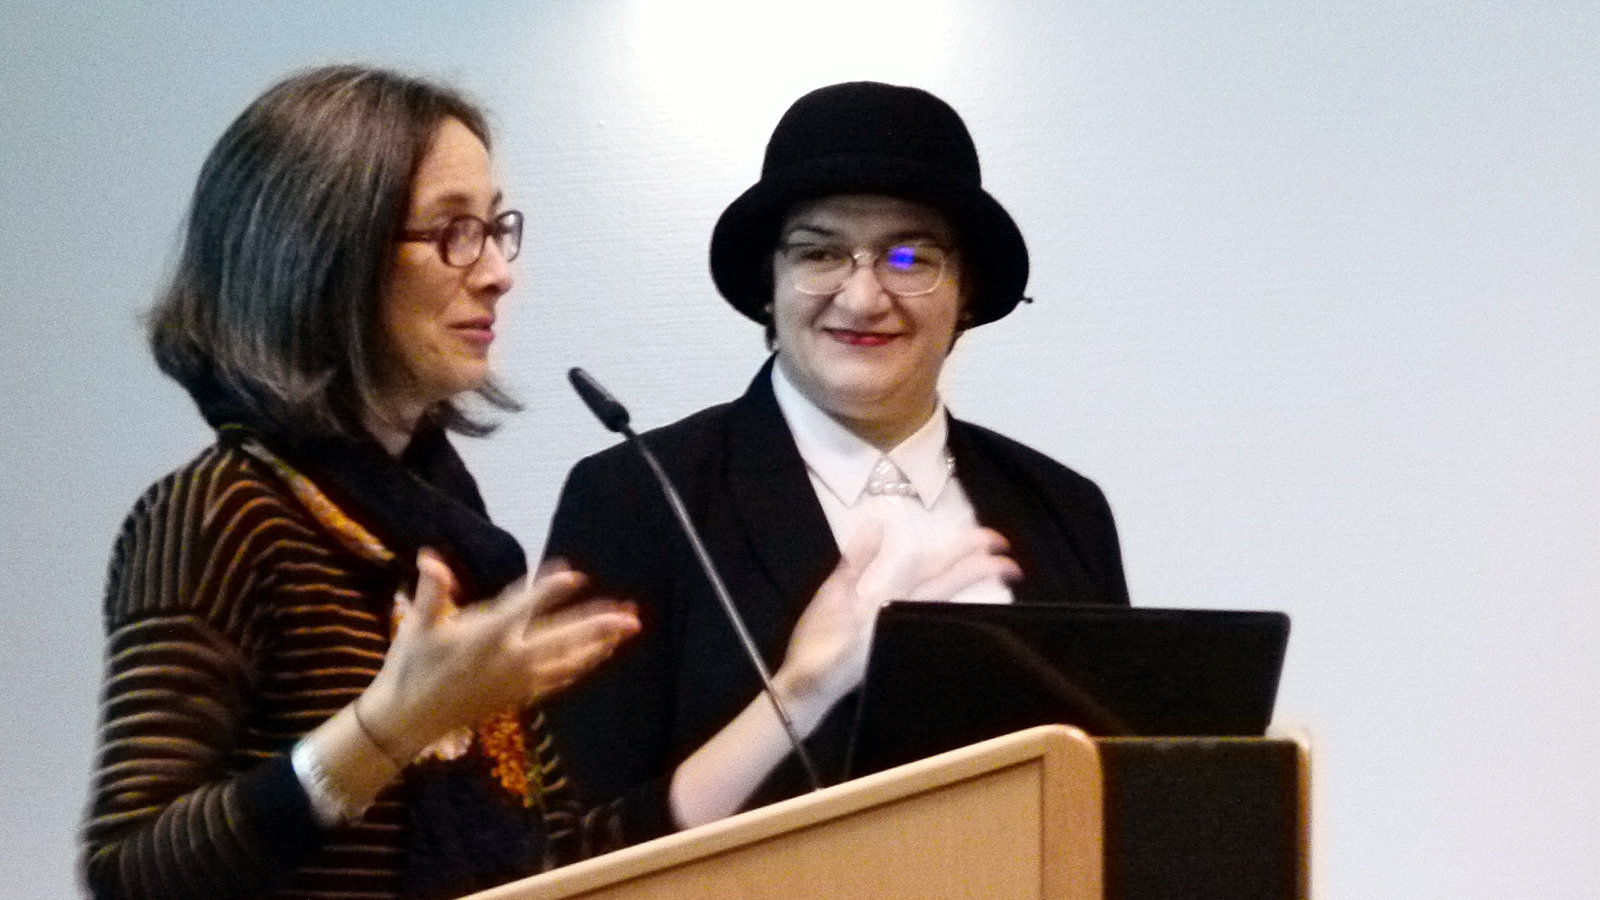 Two Women are standing at a lectern